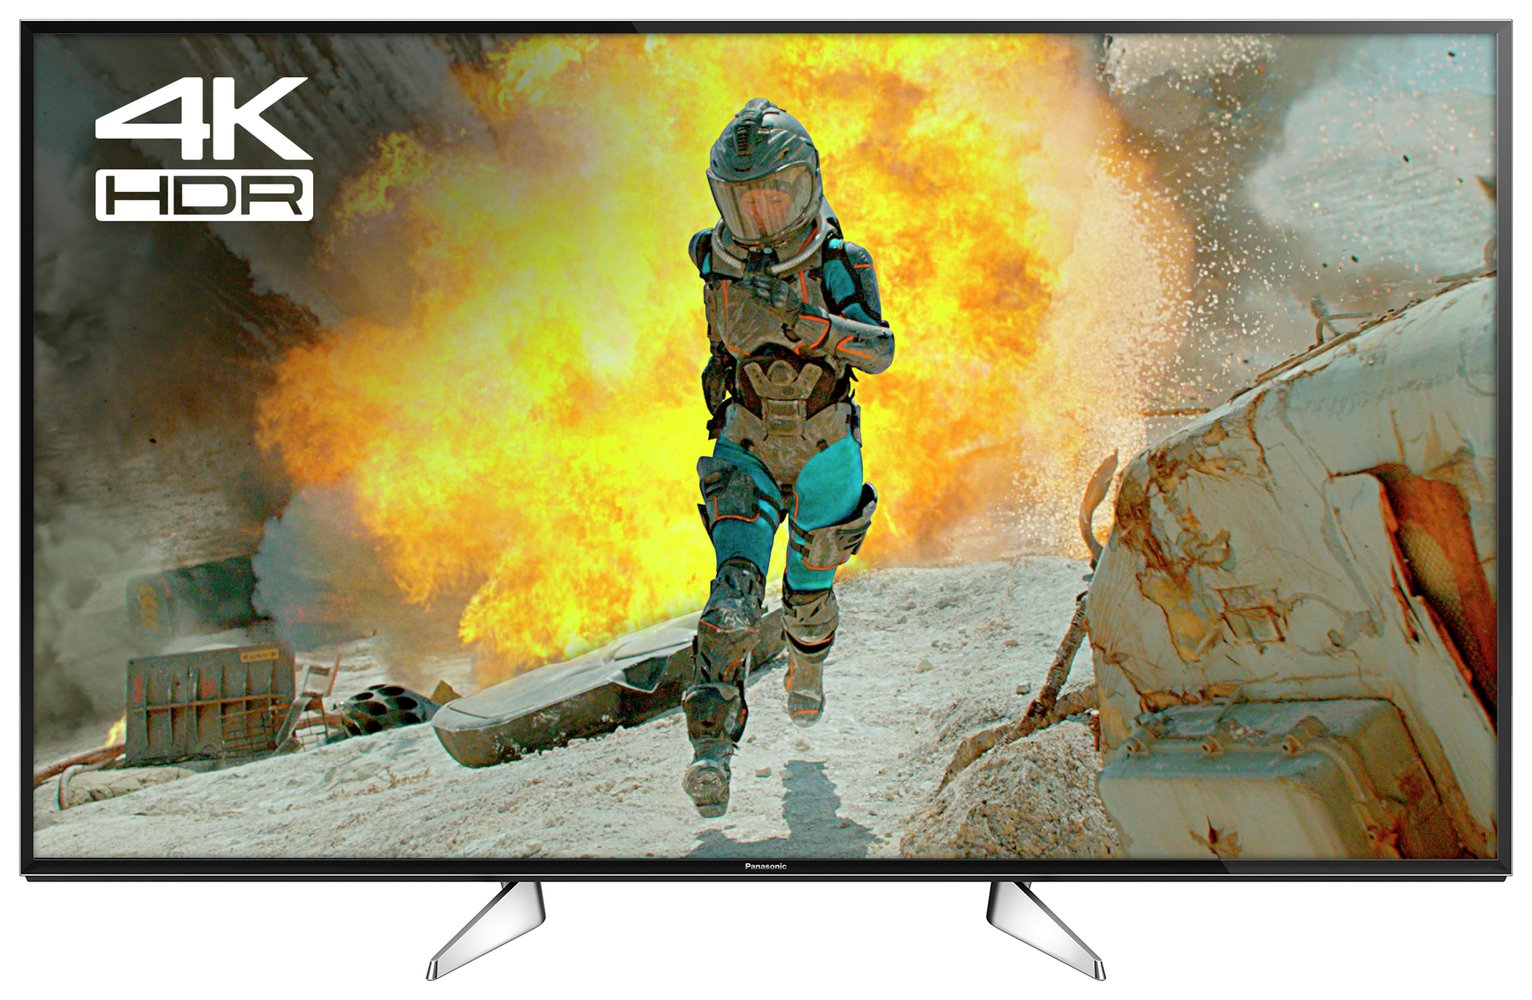 Panasonic 49TX-49EX600B 40 Inch Smart 4K UHD TV with HDR.